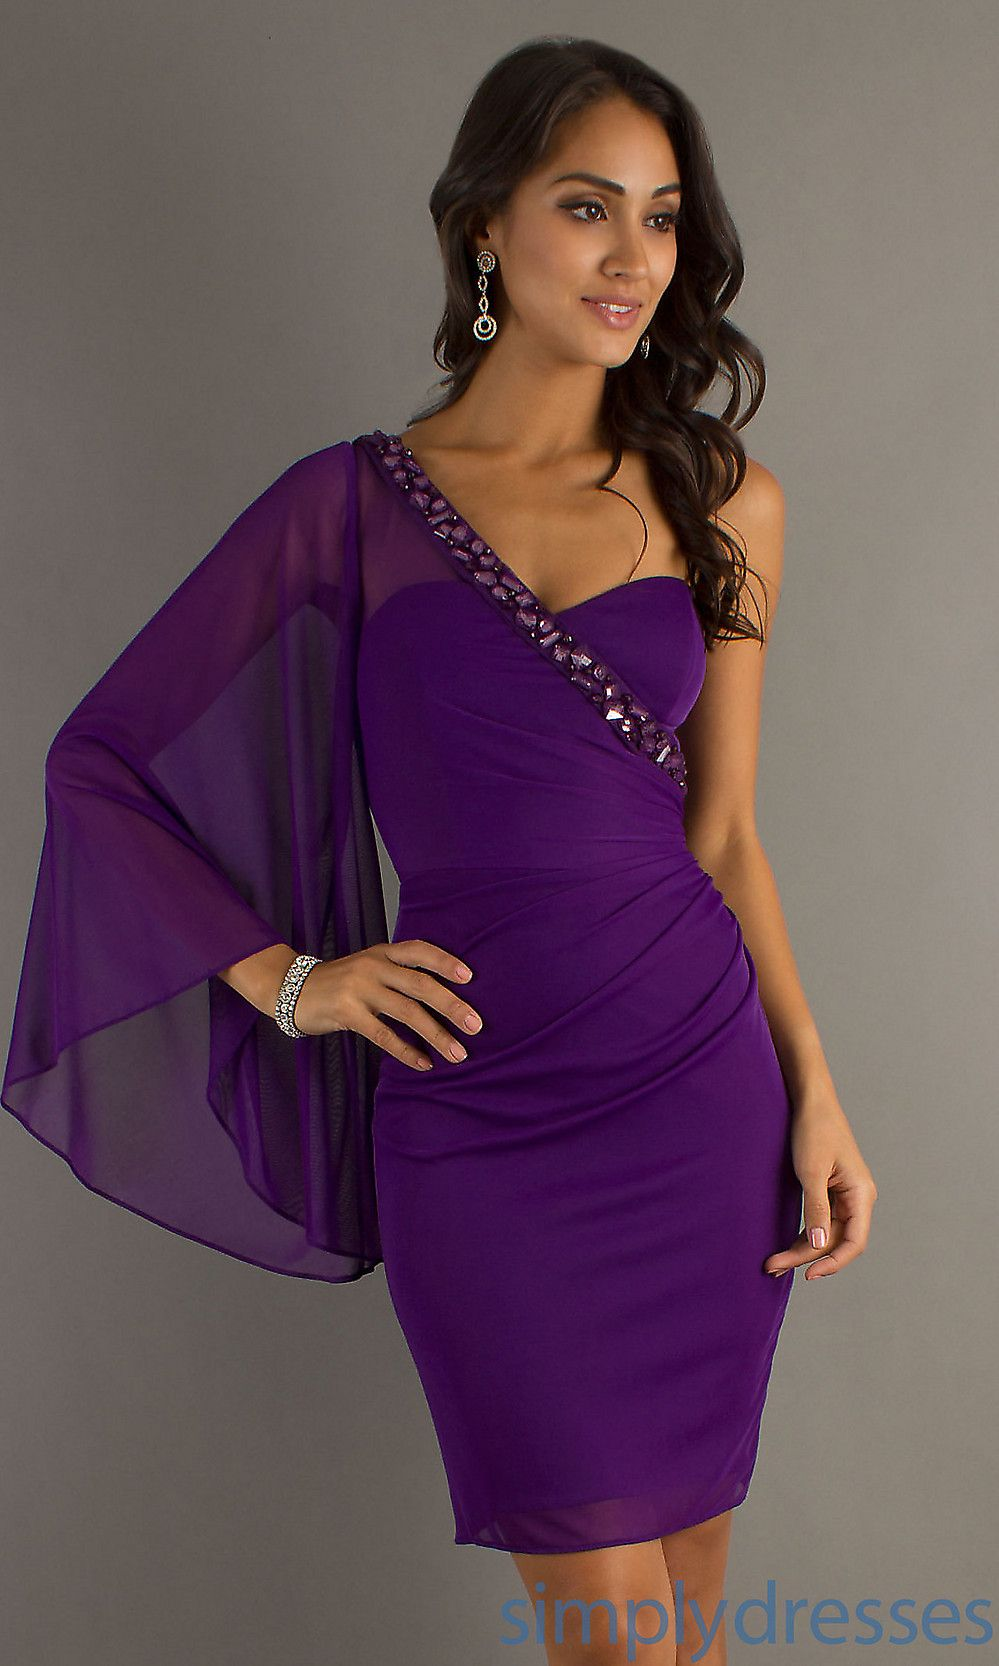 Purple Cocktail Dresses For Weddings | Short One Shoulder Dress Purple  Cocktail Dress Simply Dresses